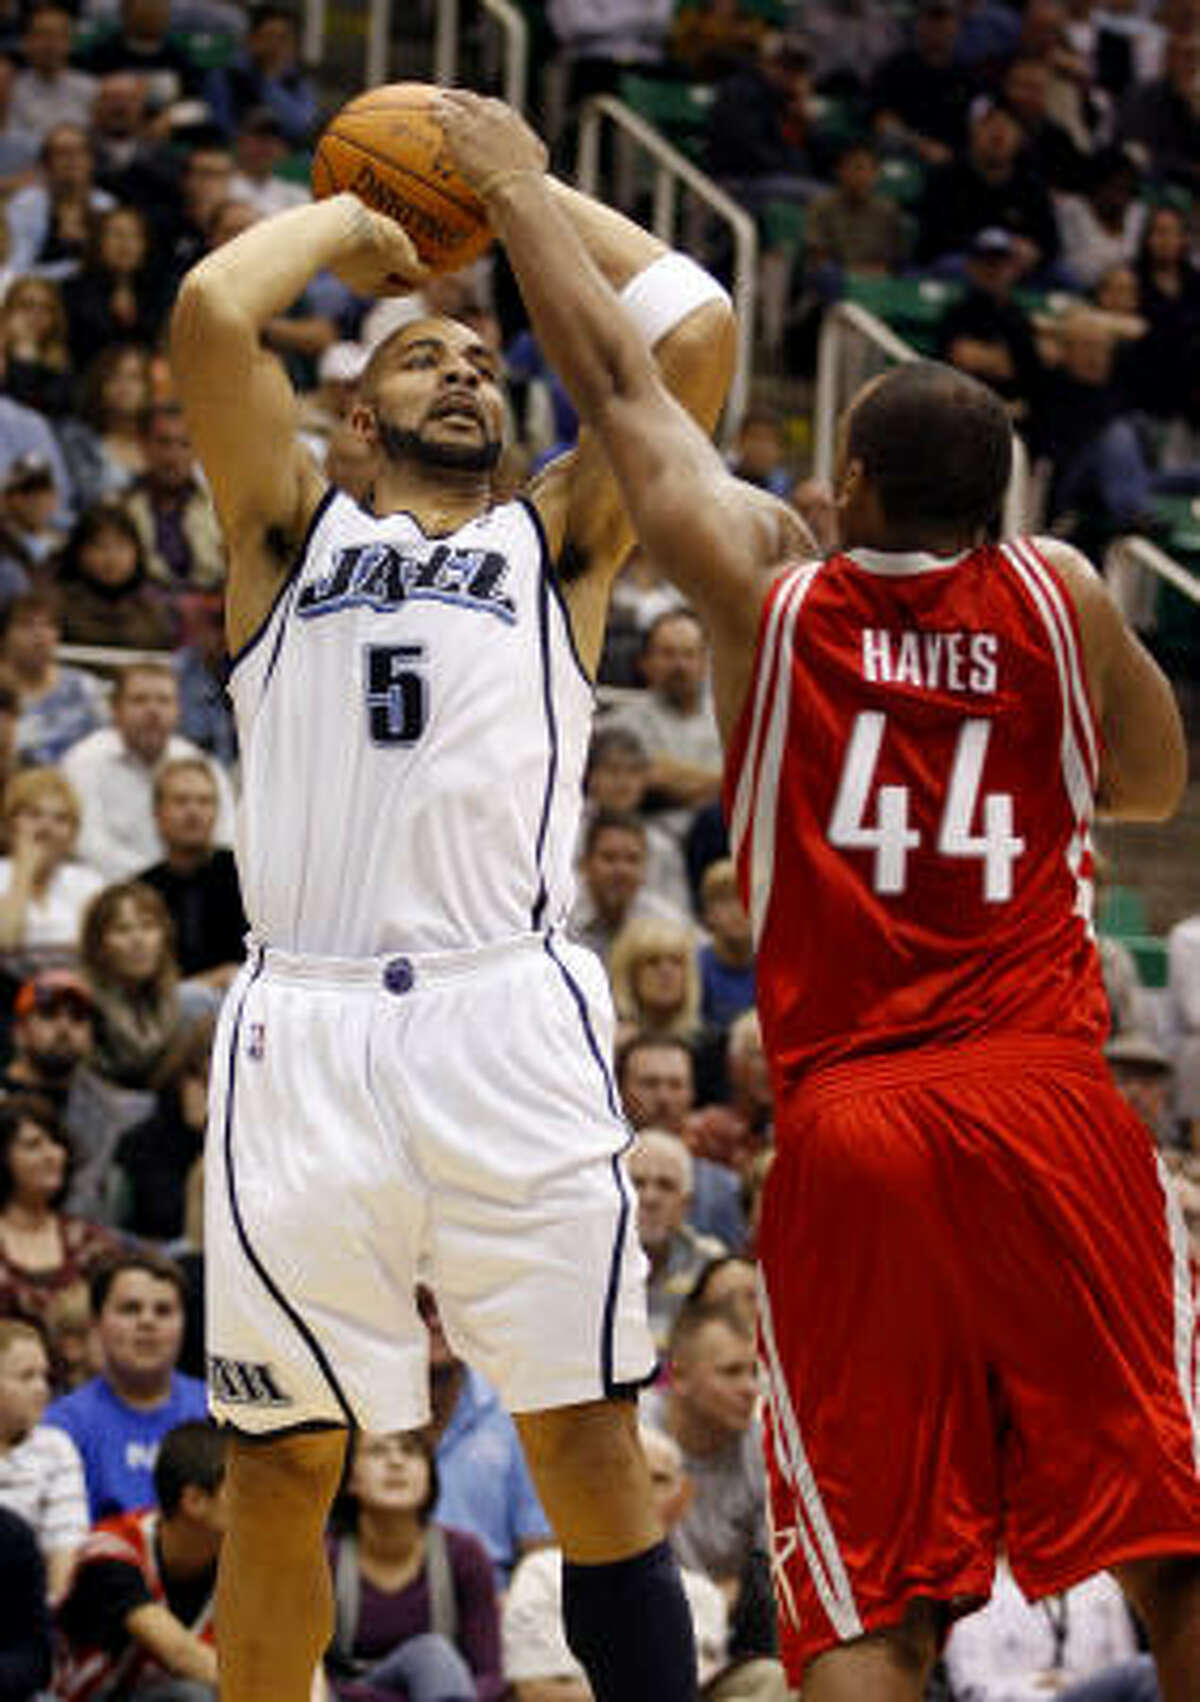 Jazz forward Carlos Boozer puts up a shot over Rockets forward Chuck Hayes. The Rockets held Boozer to 1-for-6 shooting.